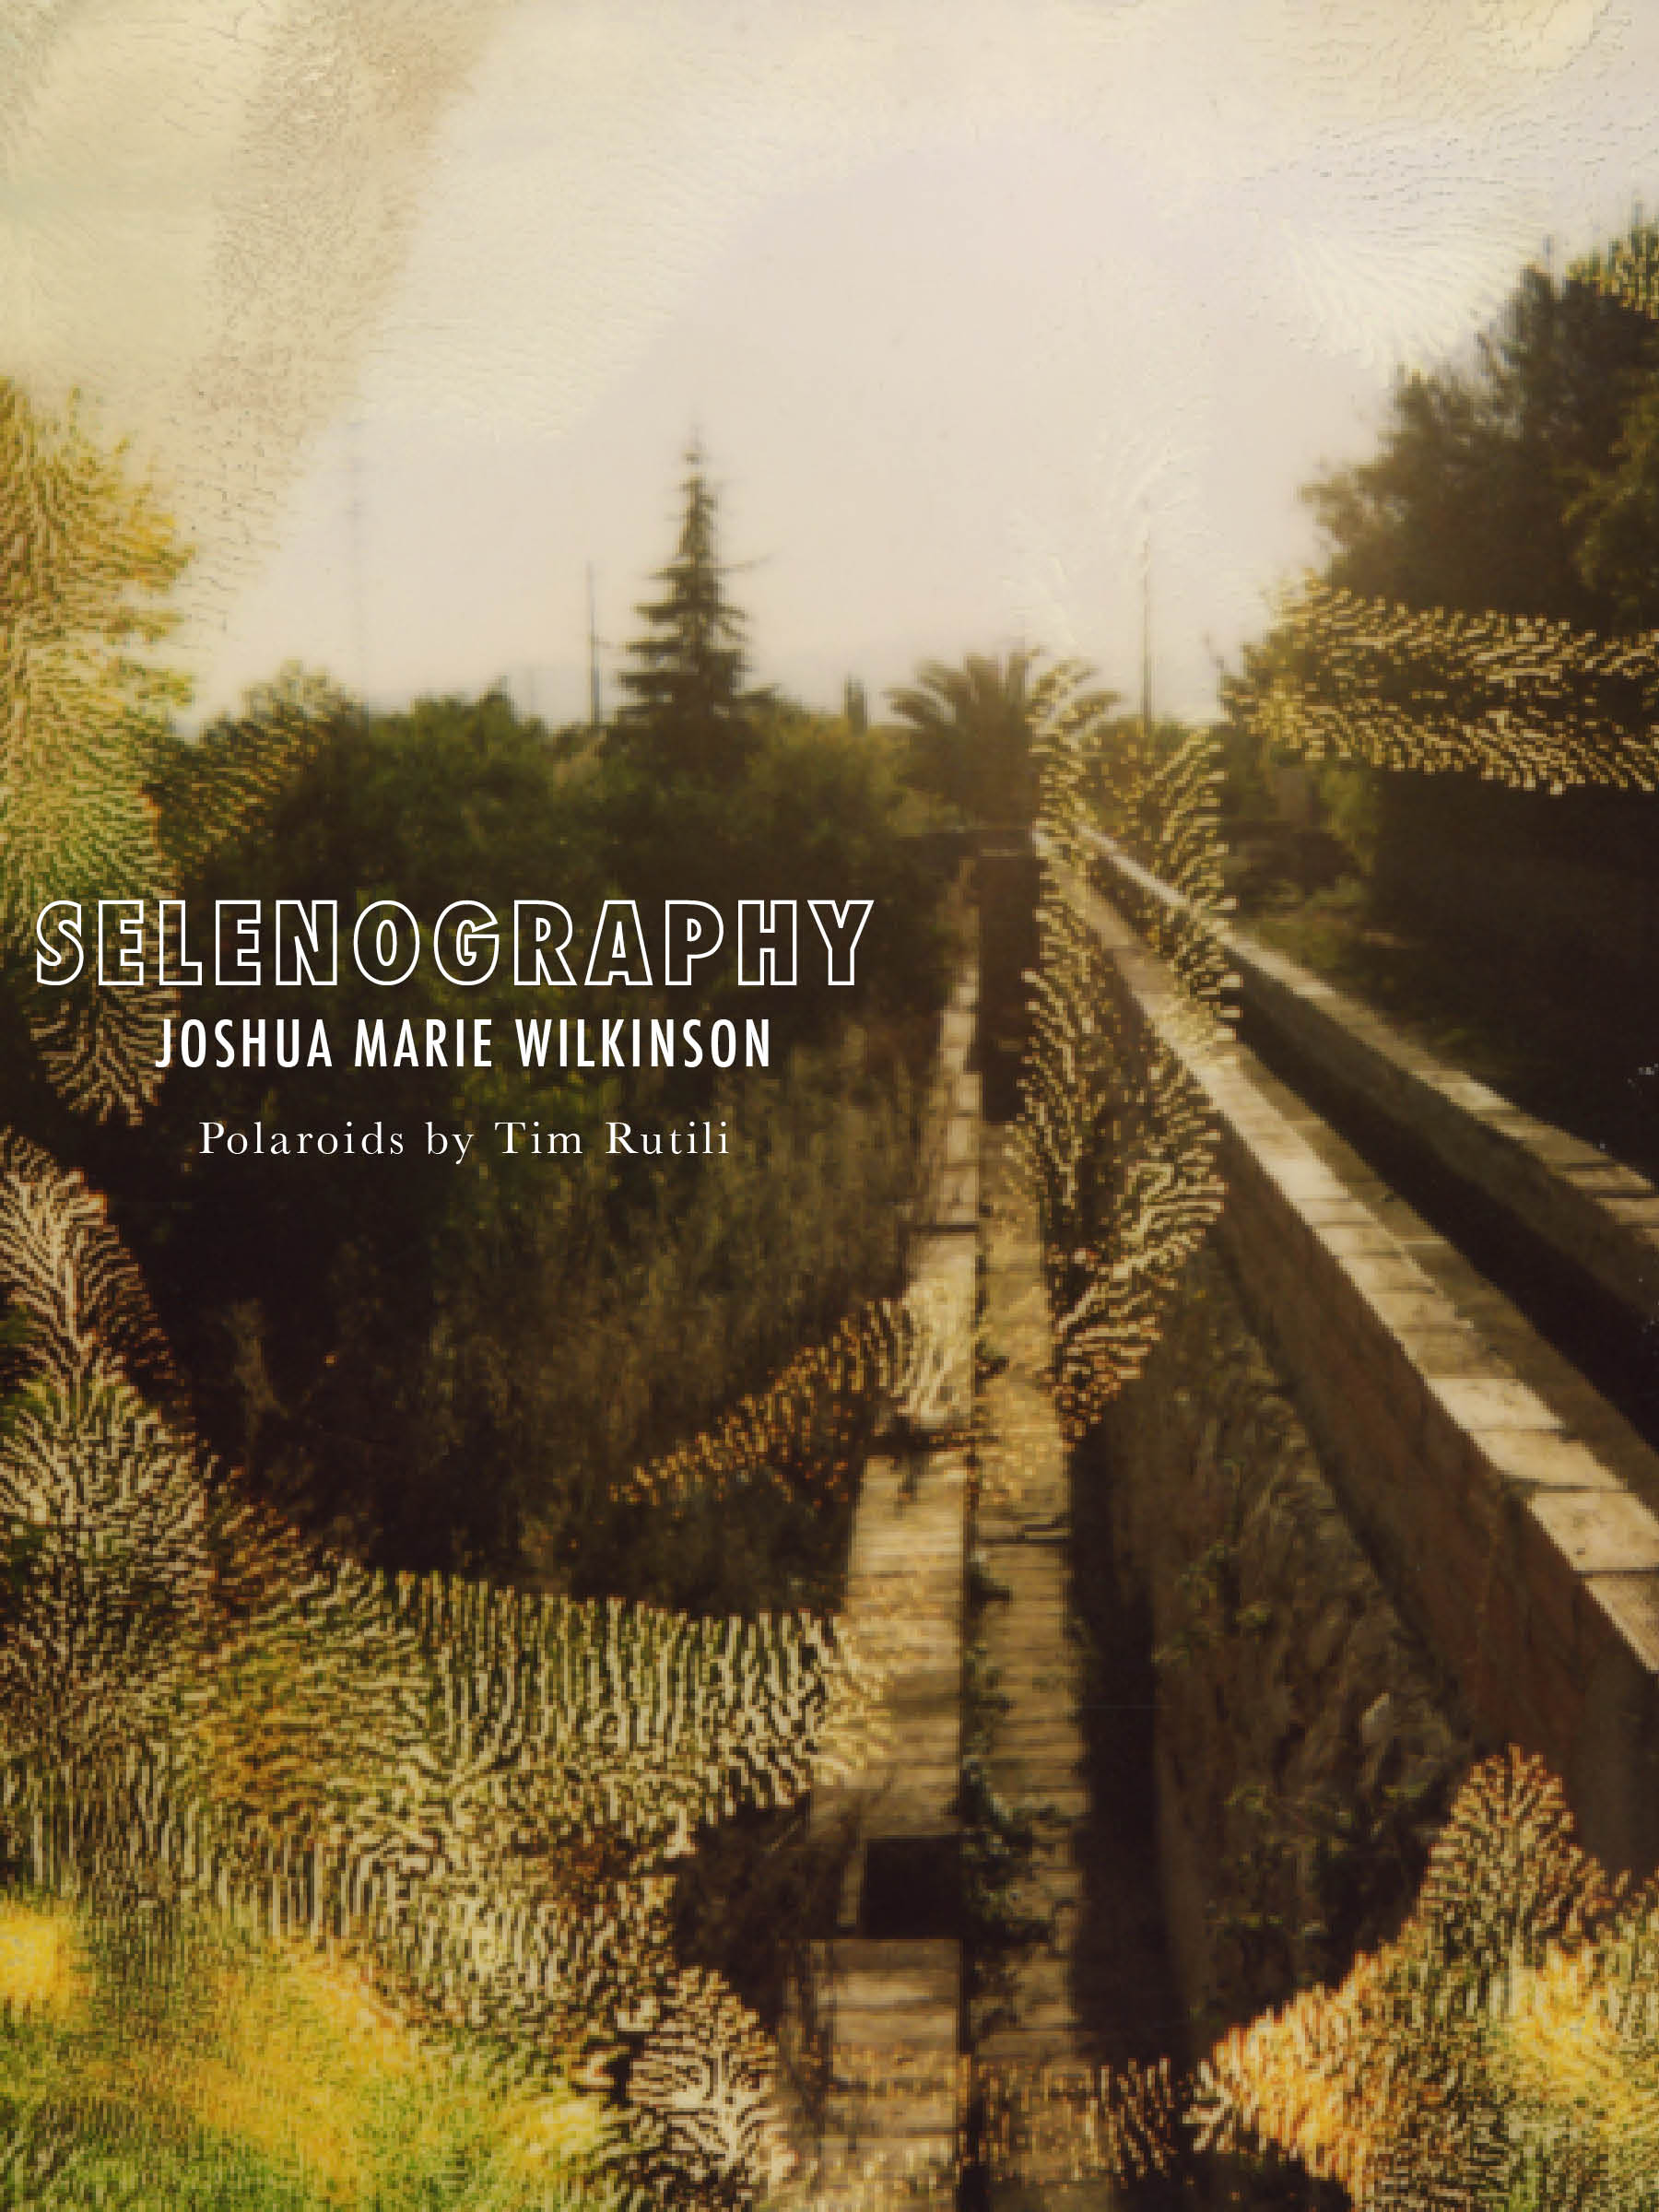 Selenography by Joshua Marie Wilkinson